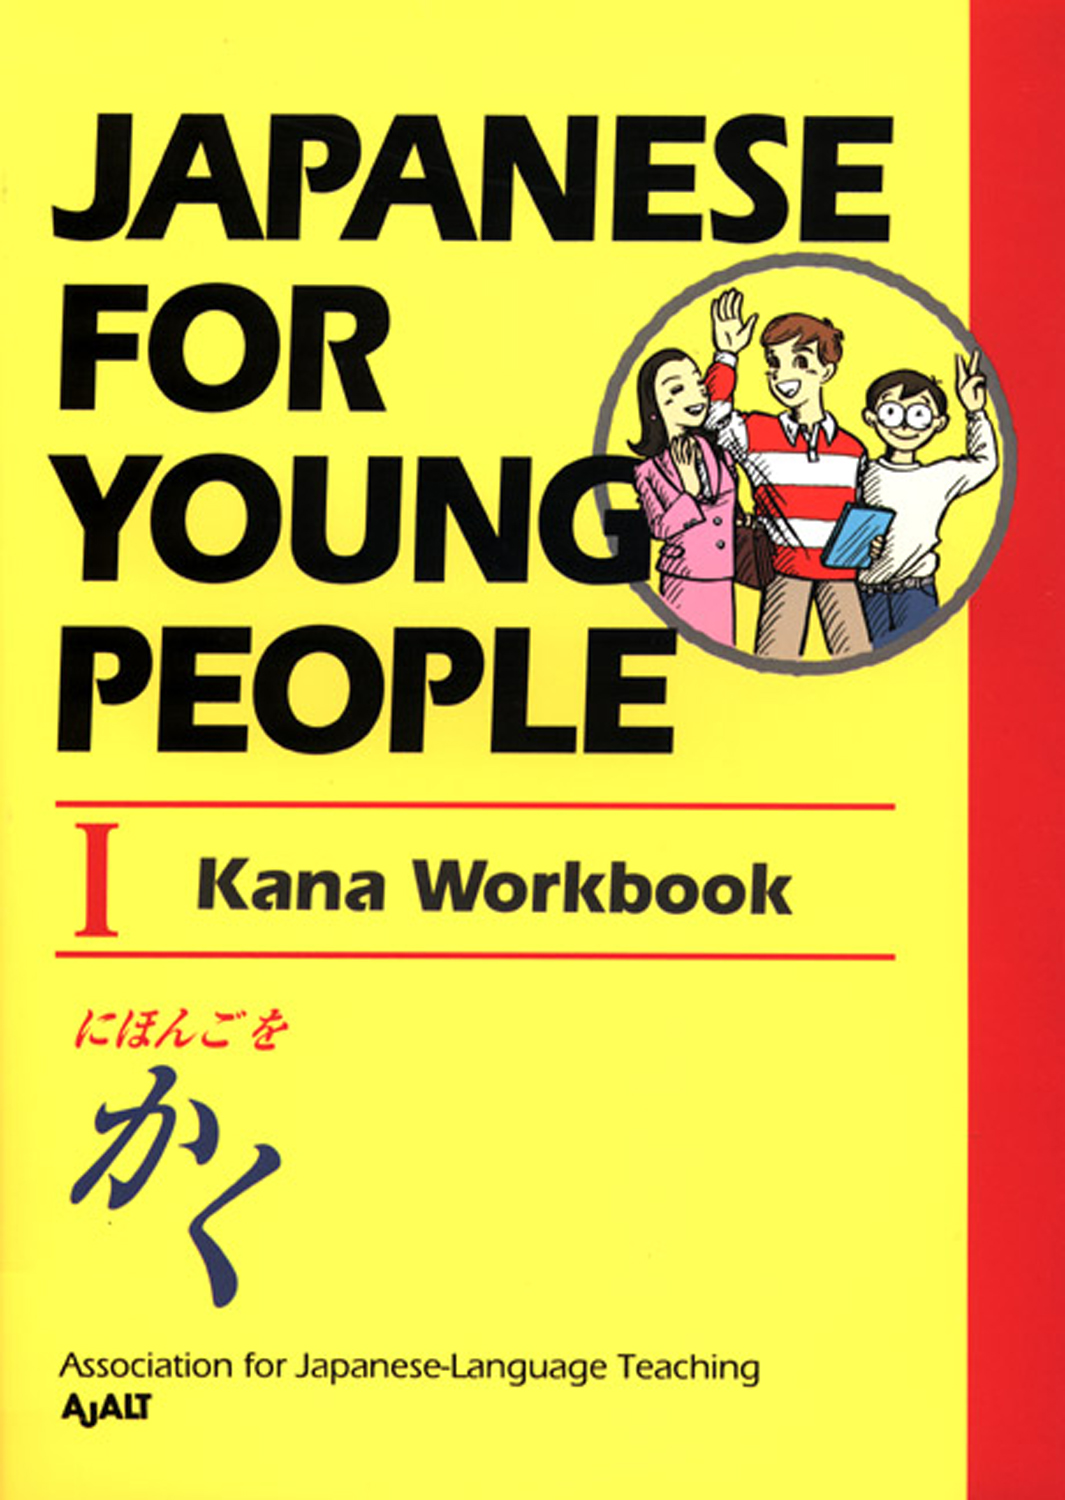 Cover of Japanese for Young People I (Kana Workbook).